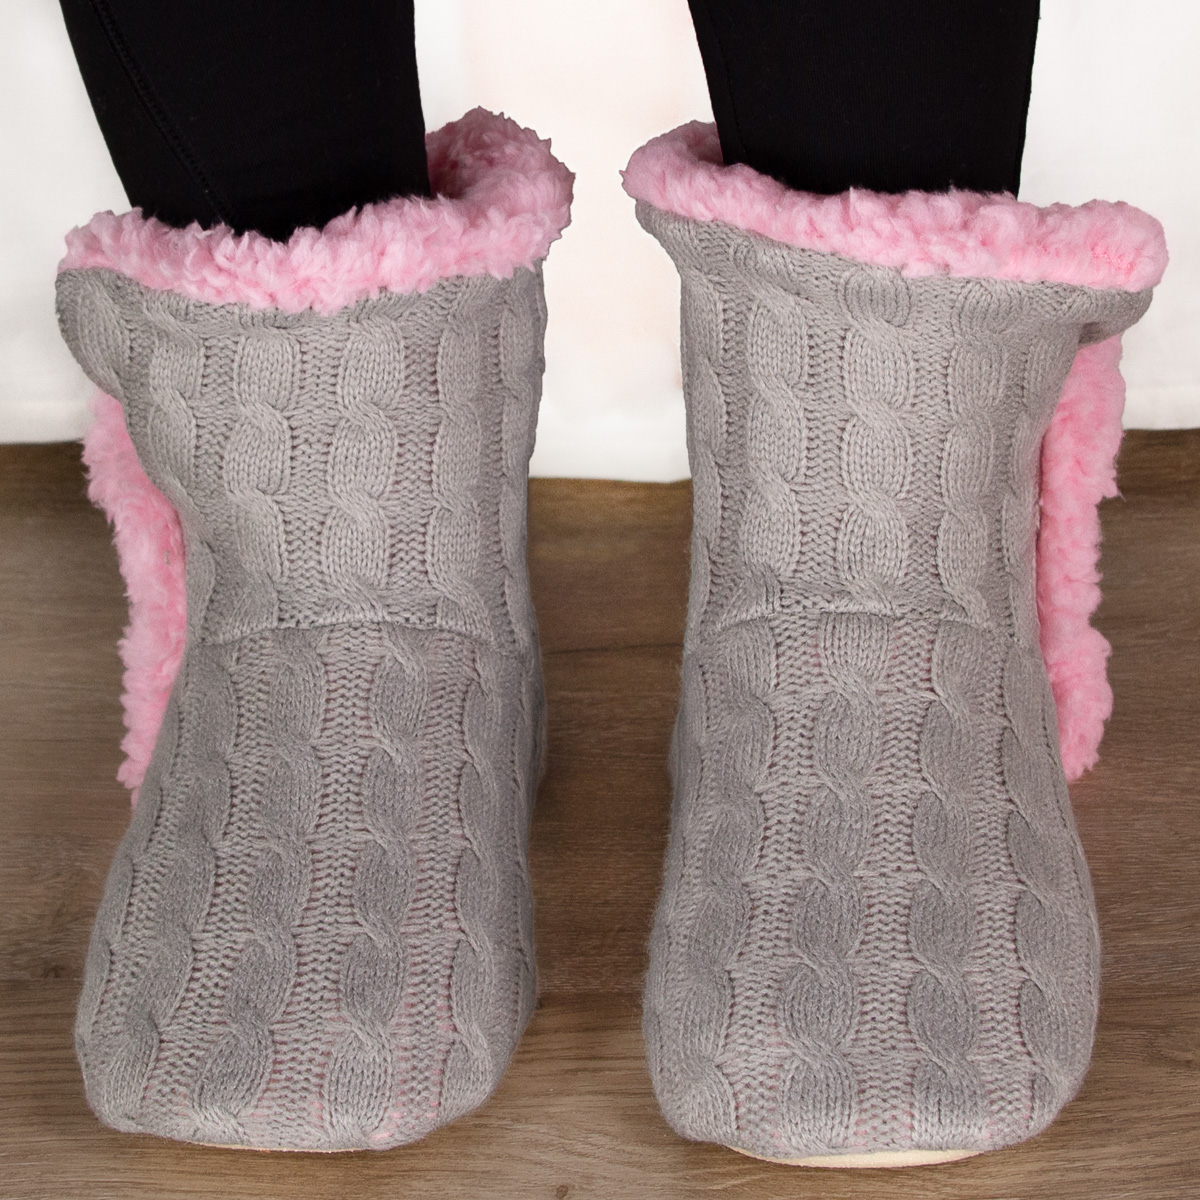 thumbnail 14 - Yelete Women's Cable Knit Slippers House Booties Soft Sherpa Lining Rubber Soles